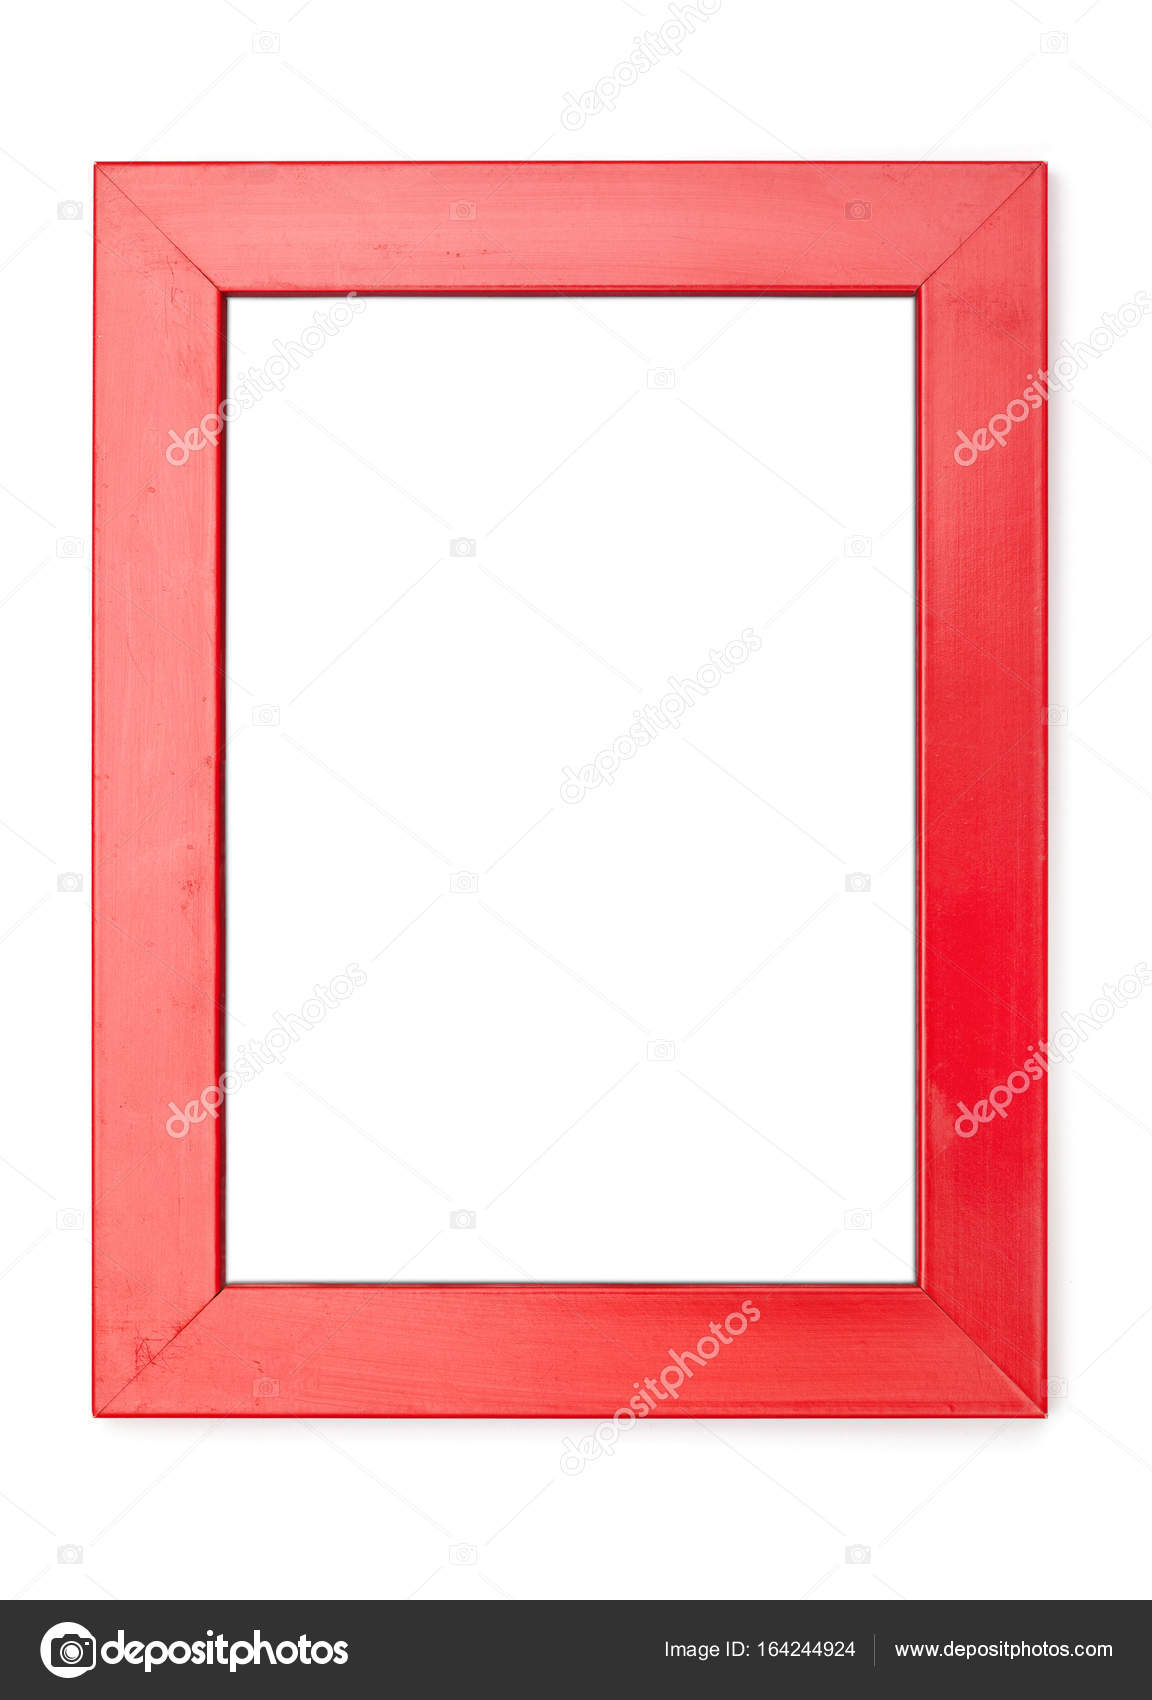 Picture Frames Series, isolated on White Background Cut-Out: red ...